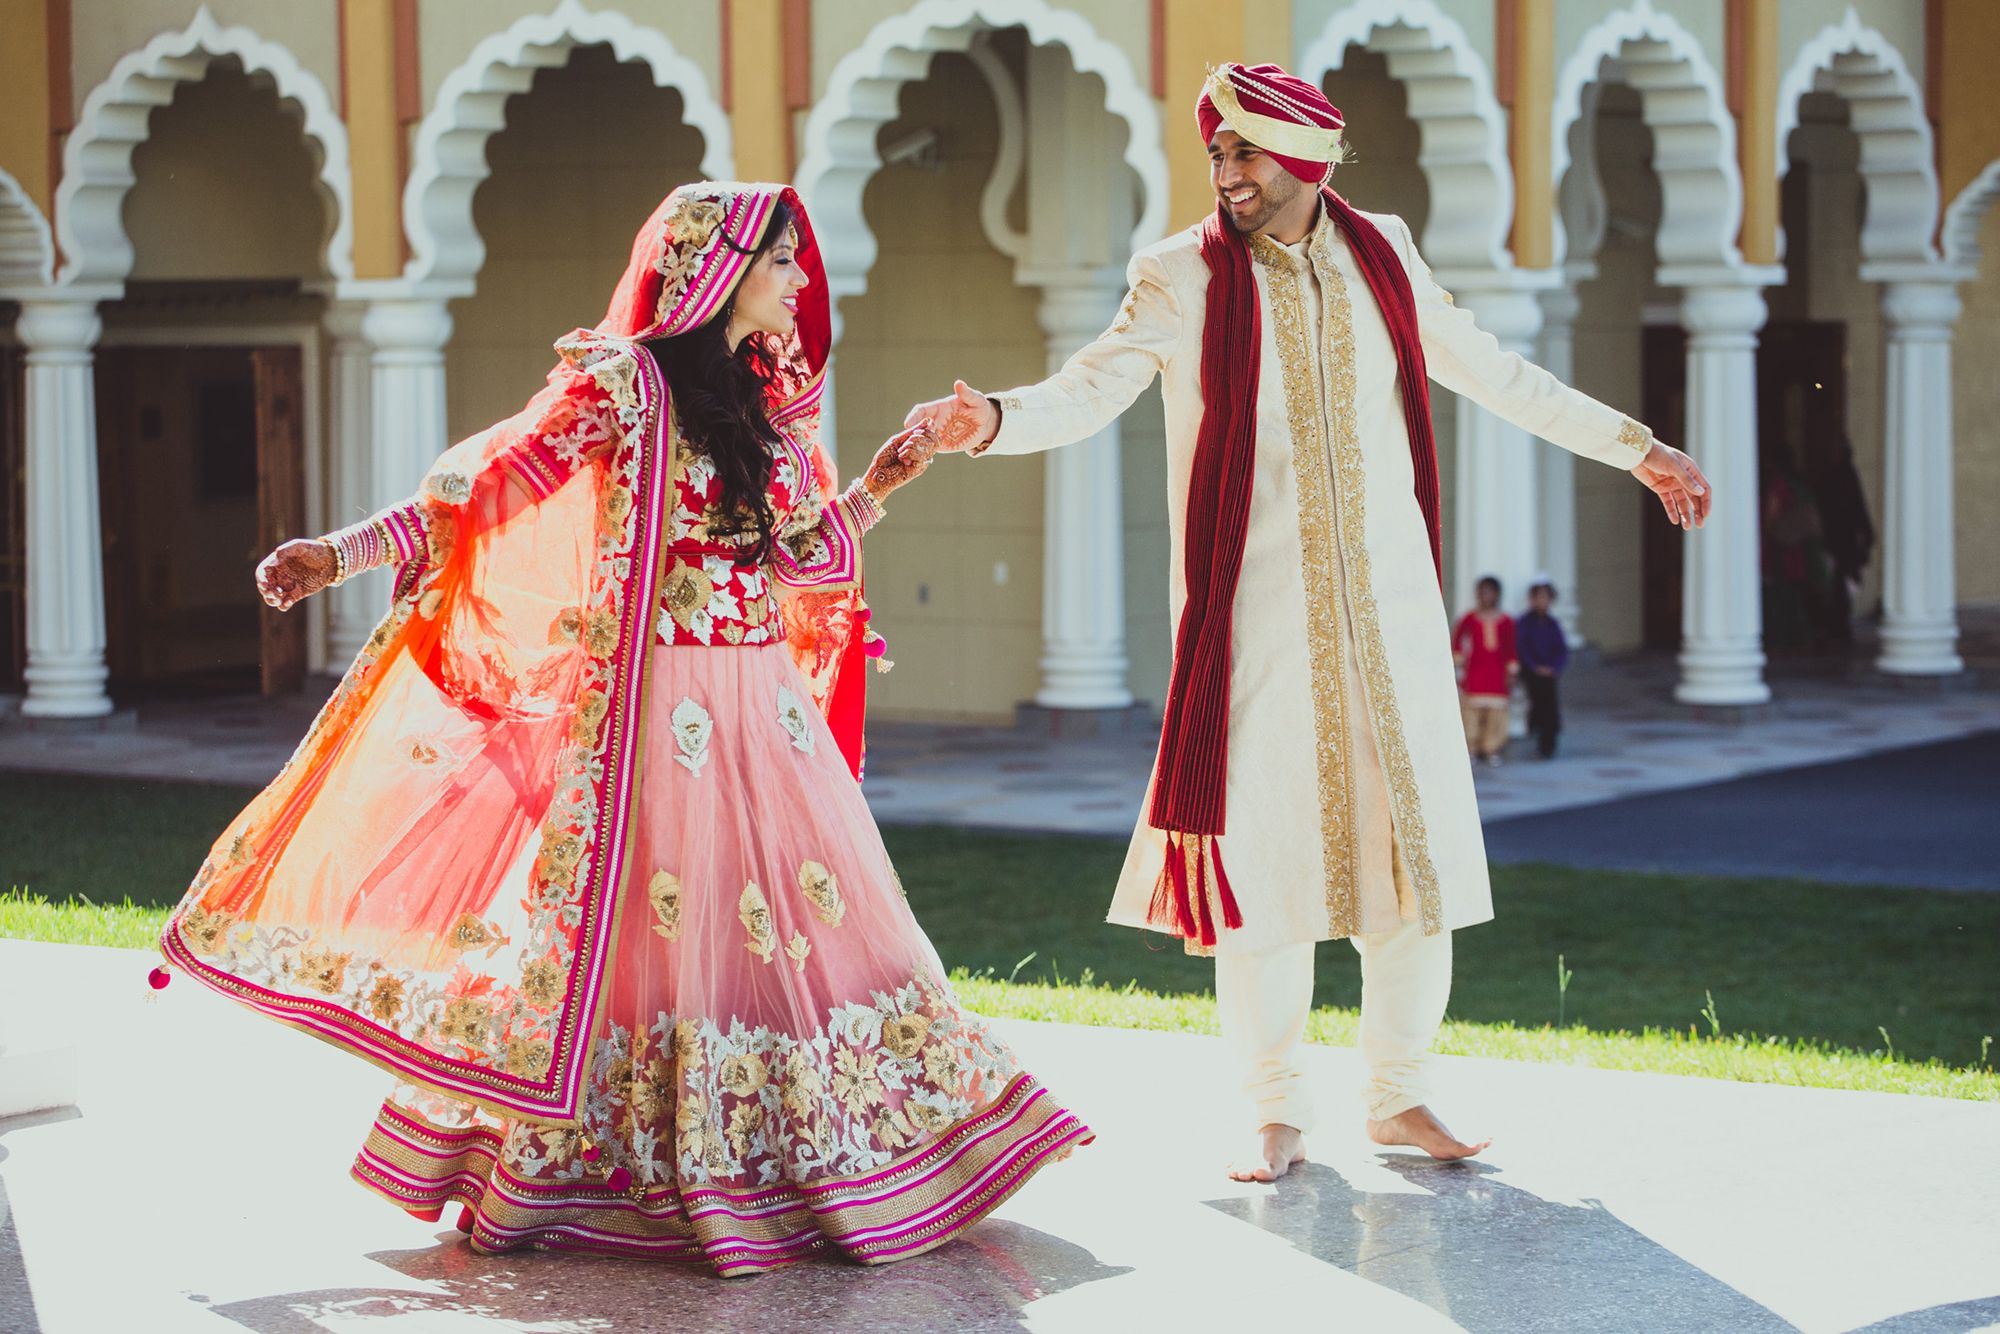 Post Wedding Traditions From Around The World: Fascinating Wedding Traditions From Around The World